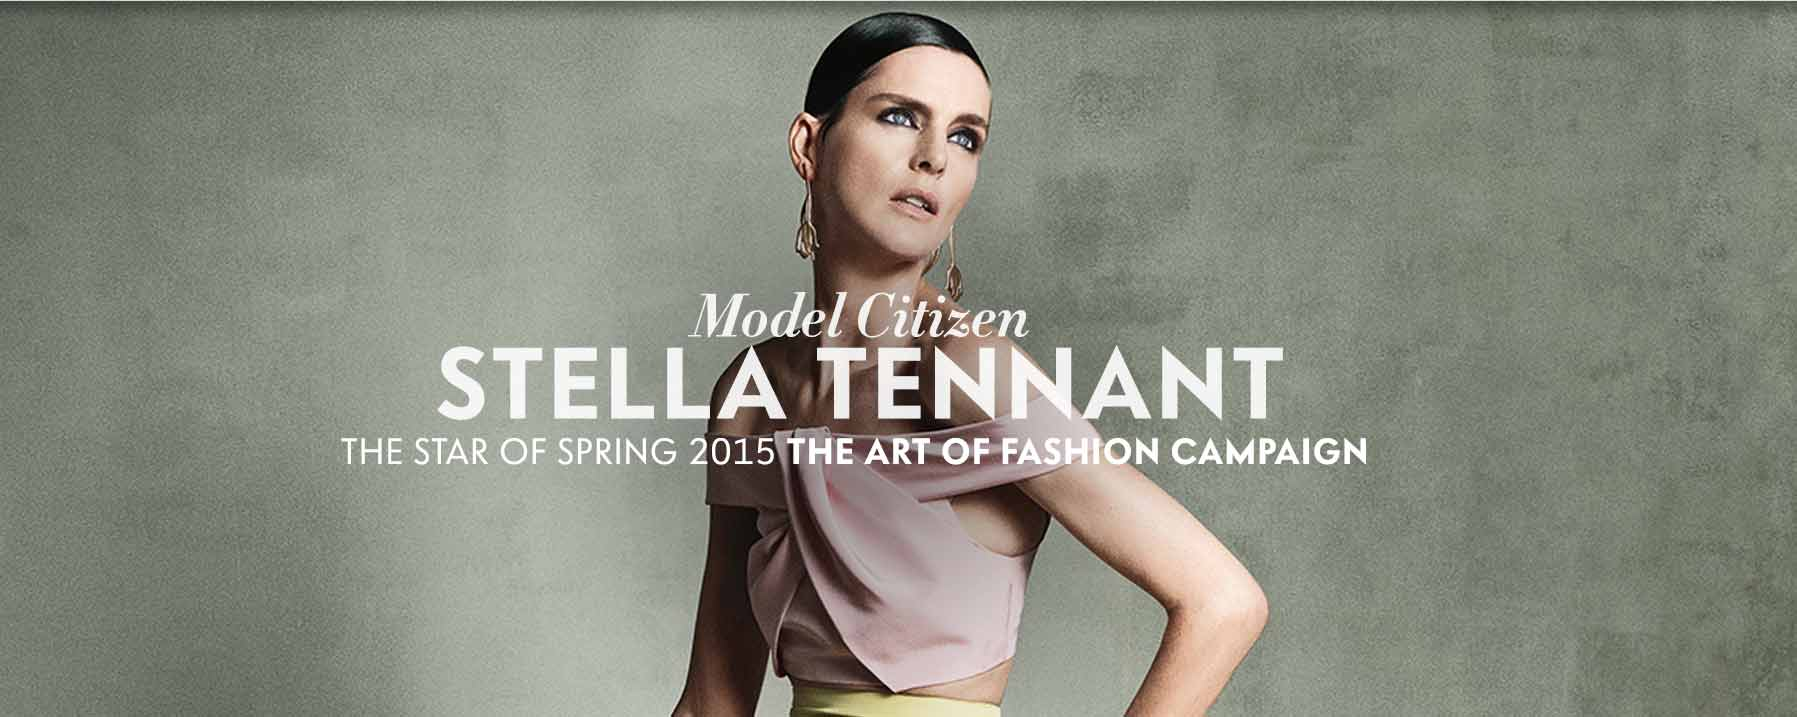 Model Citizen: Stella Tennant